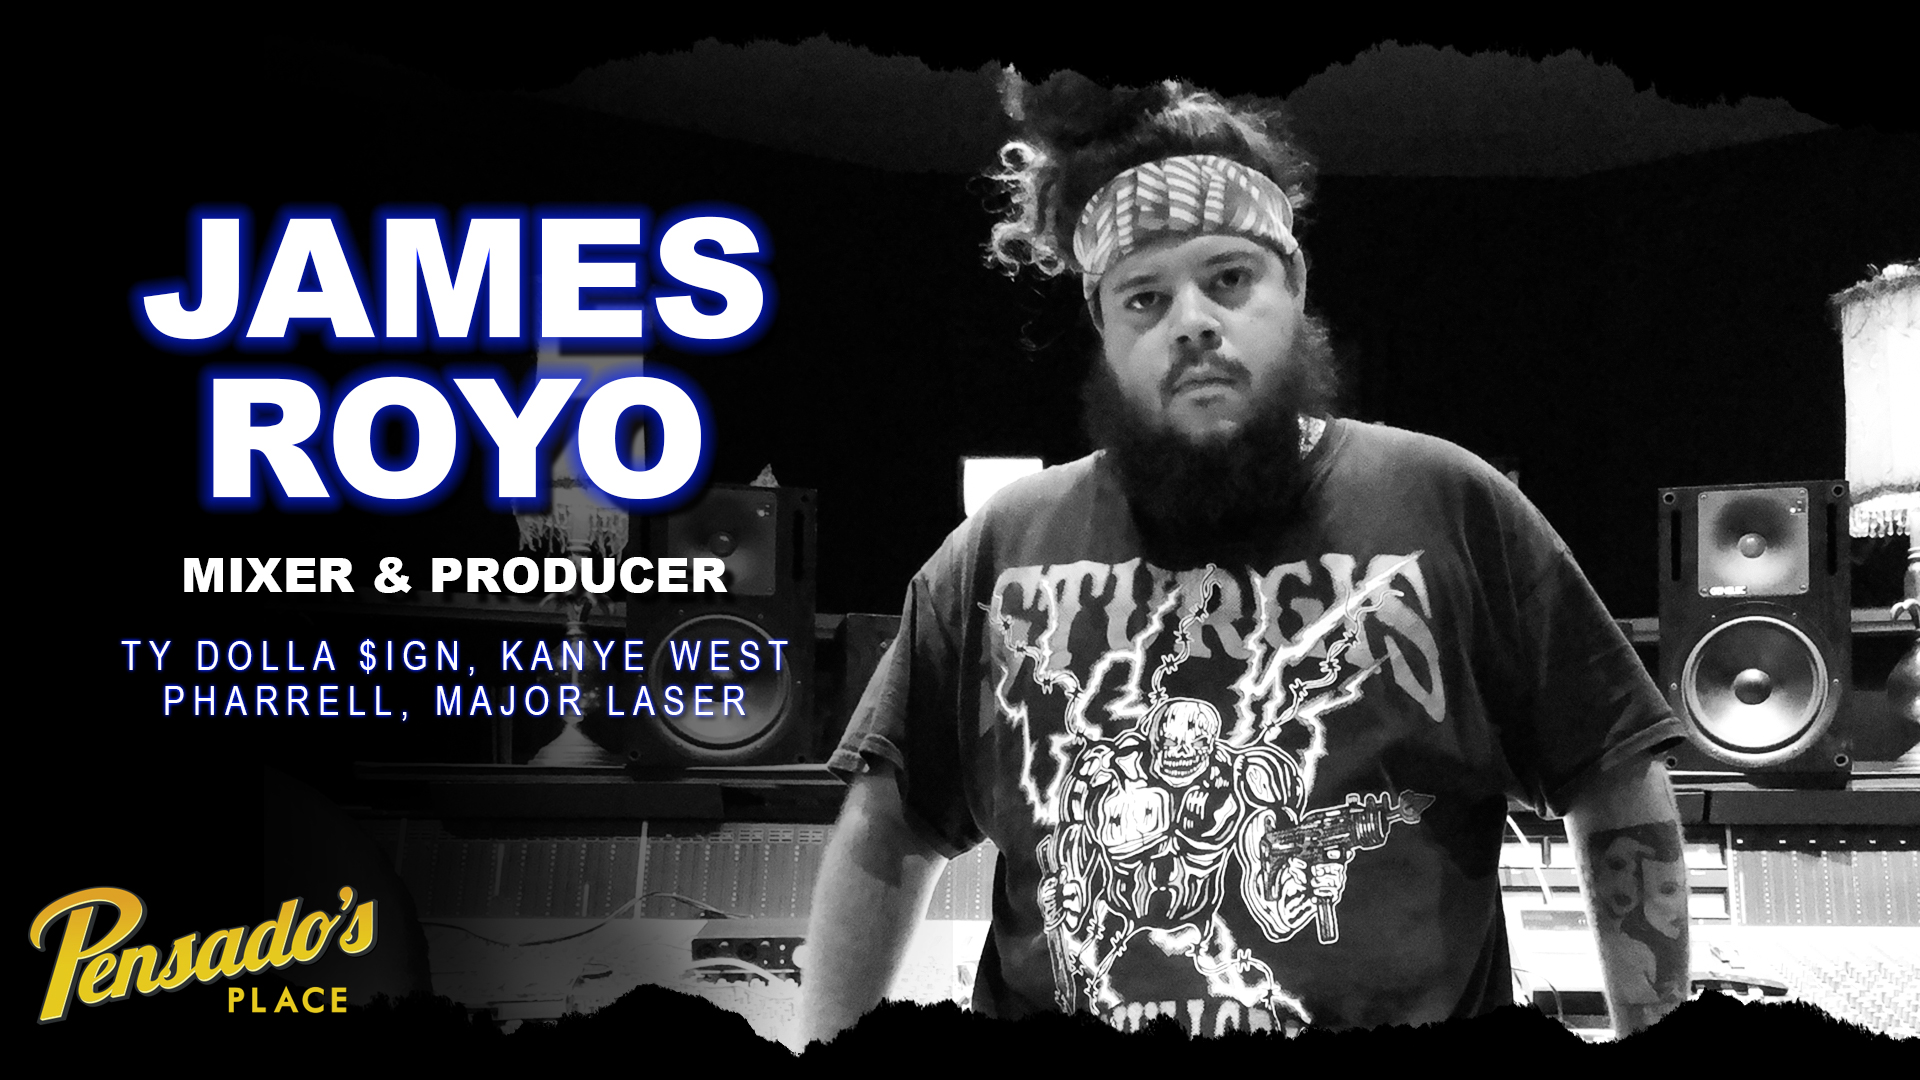 Ty Dolla $ign Producer / Mixer, James Royo